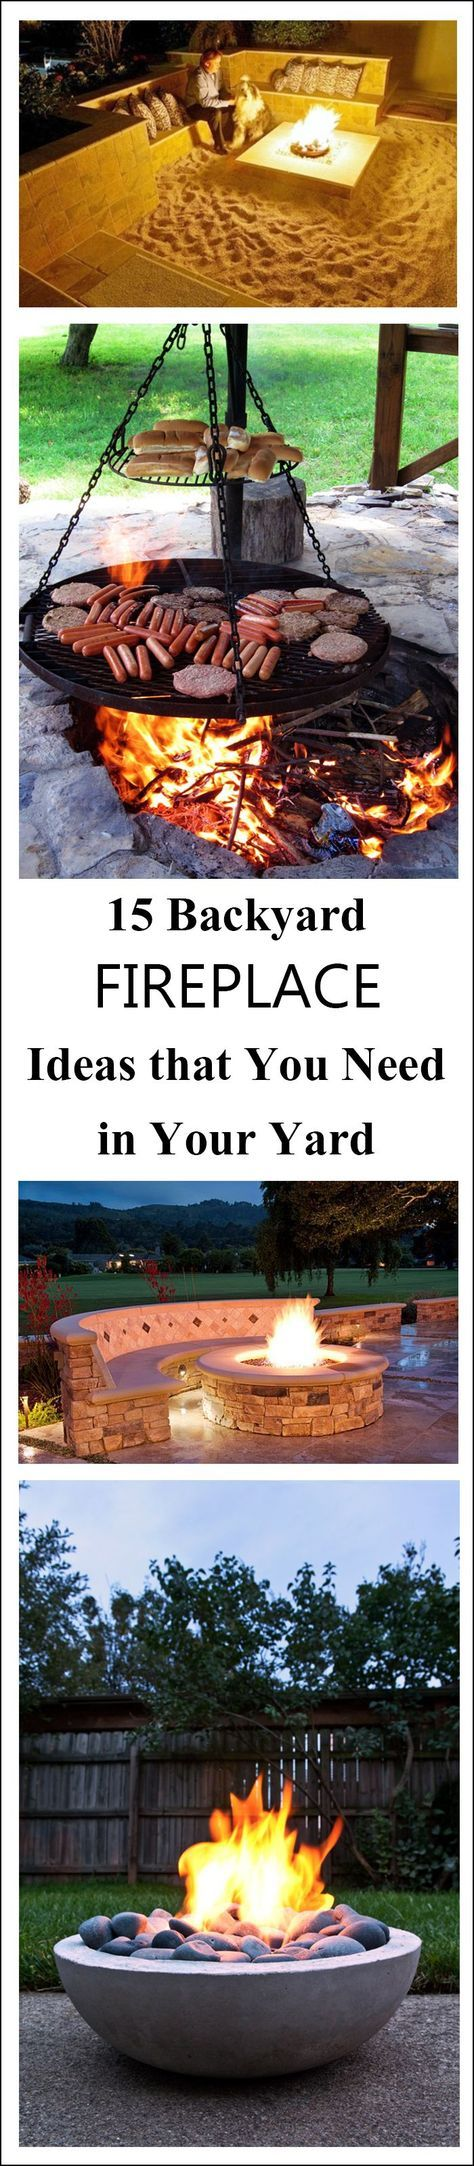 best Backyard ideas images on Pinterest Decks Play areas and